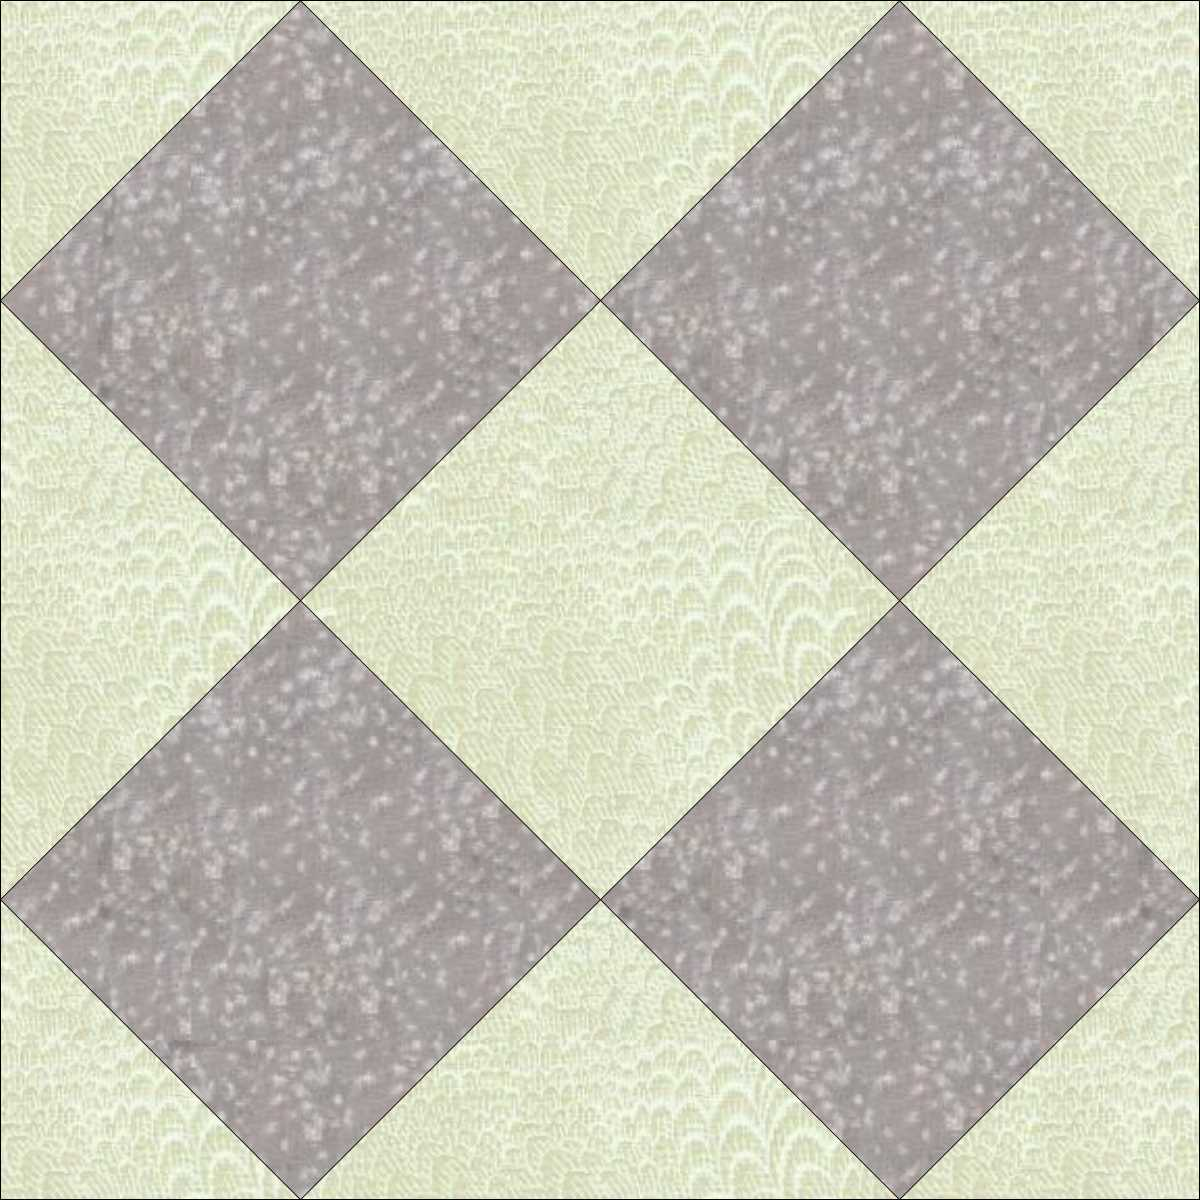 crossroads-quilt block